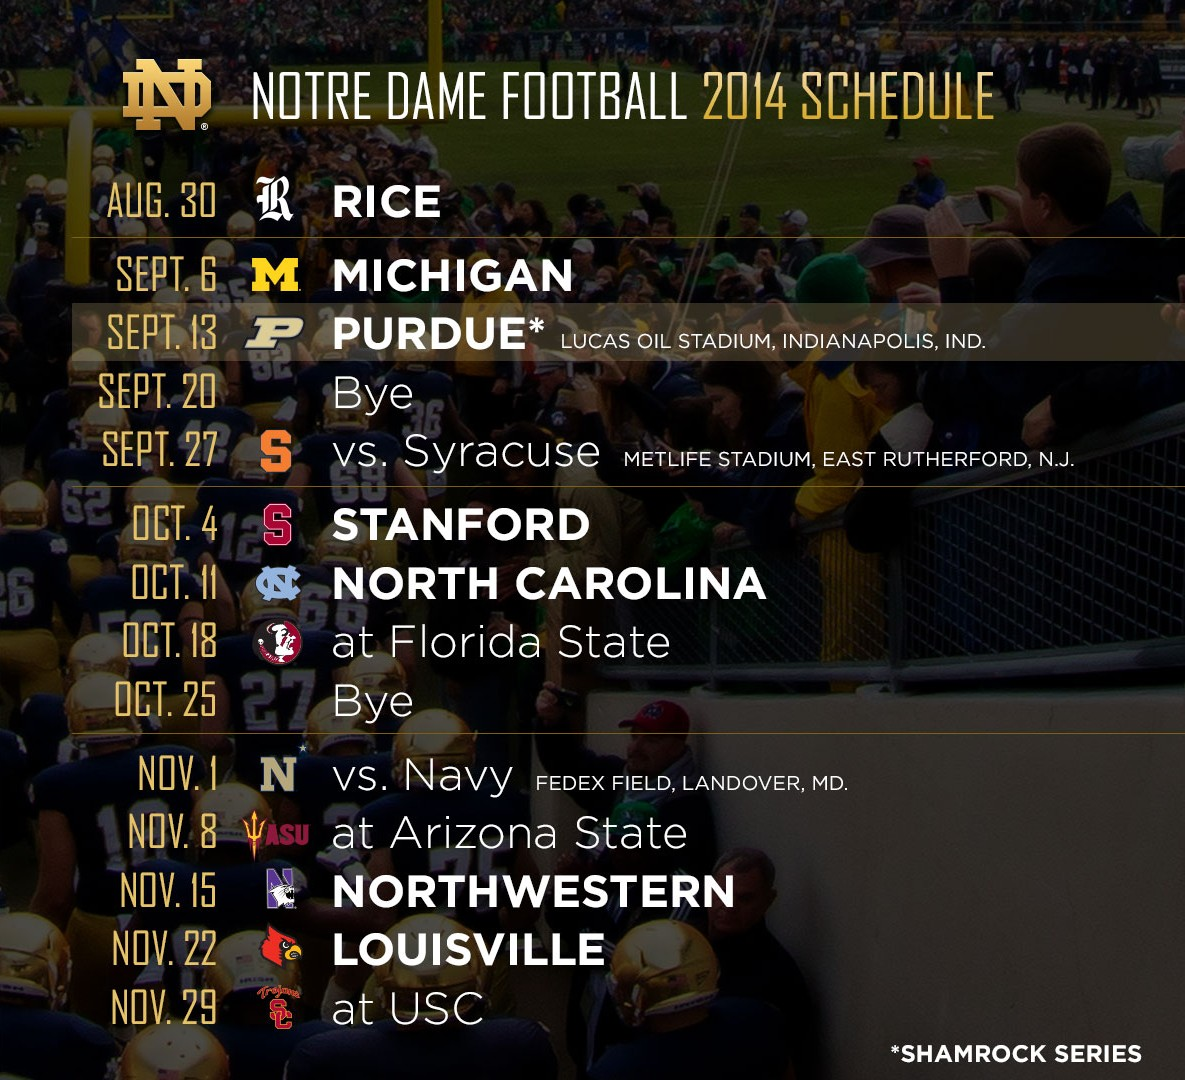 Florida State Football Wallpaper 2014 The 2014 football schedule 1185x1080